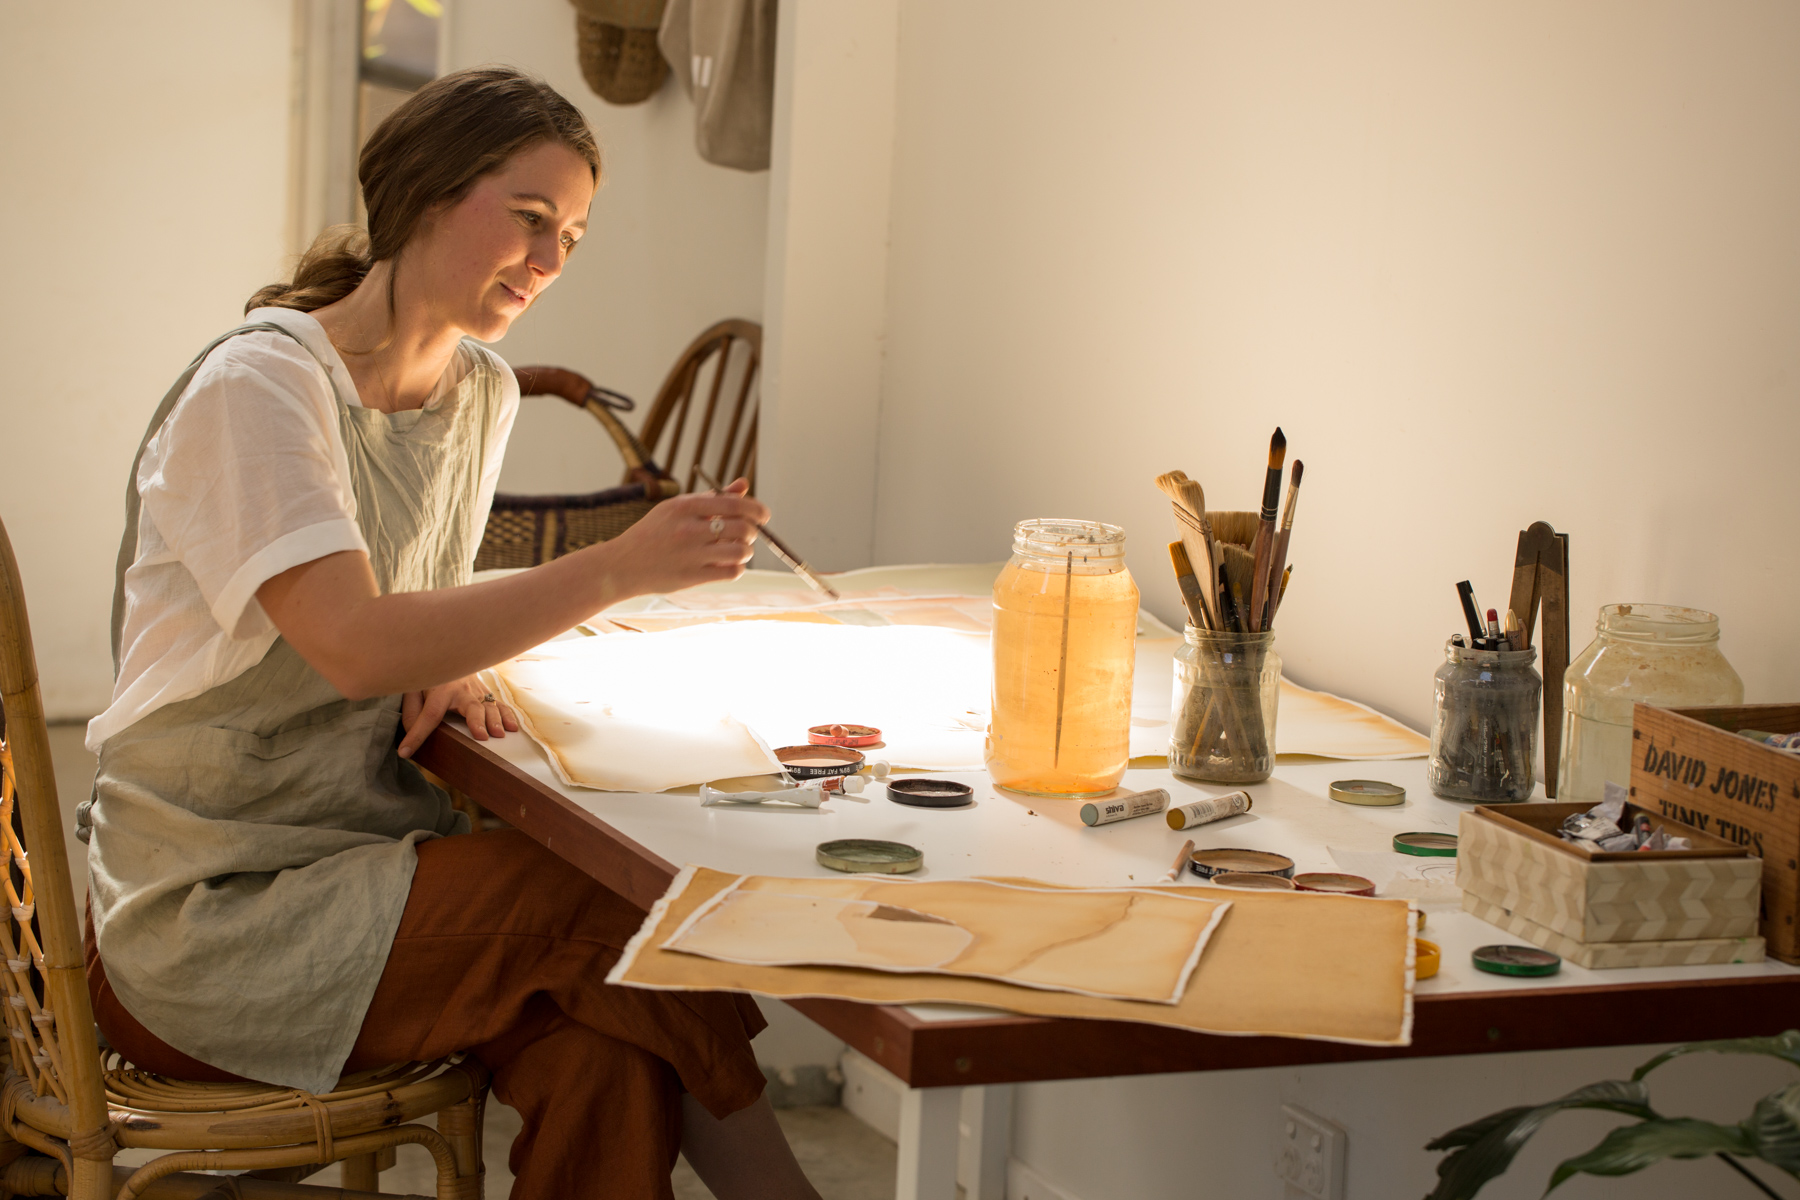 Lily working in her home studio